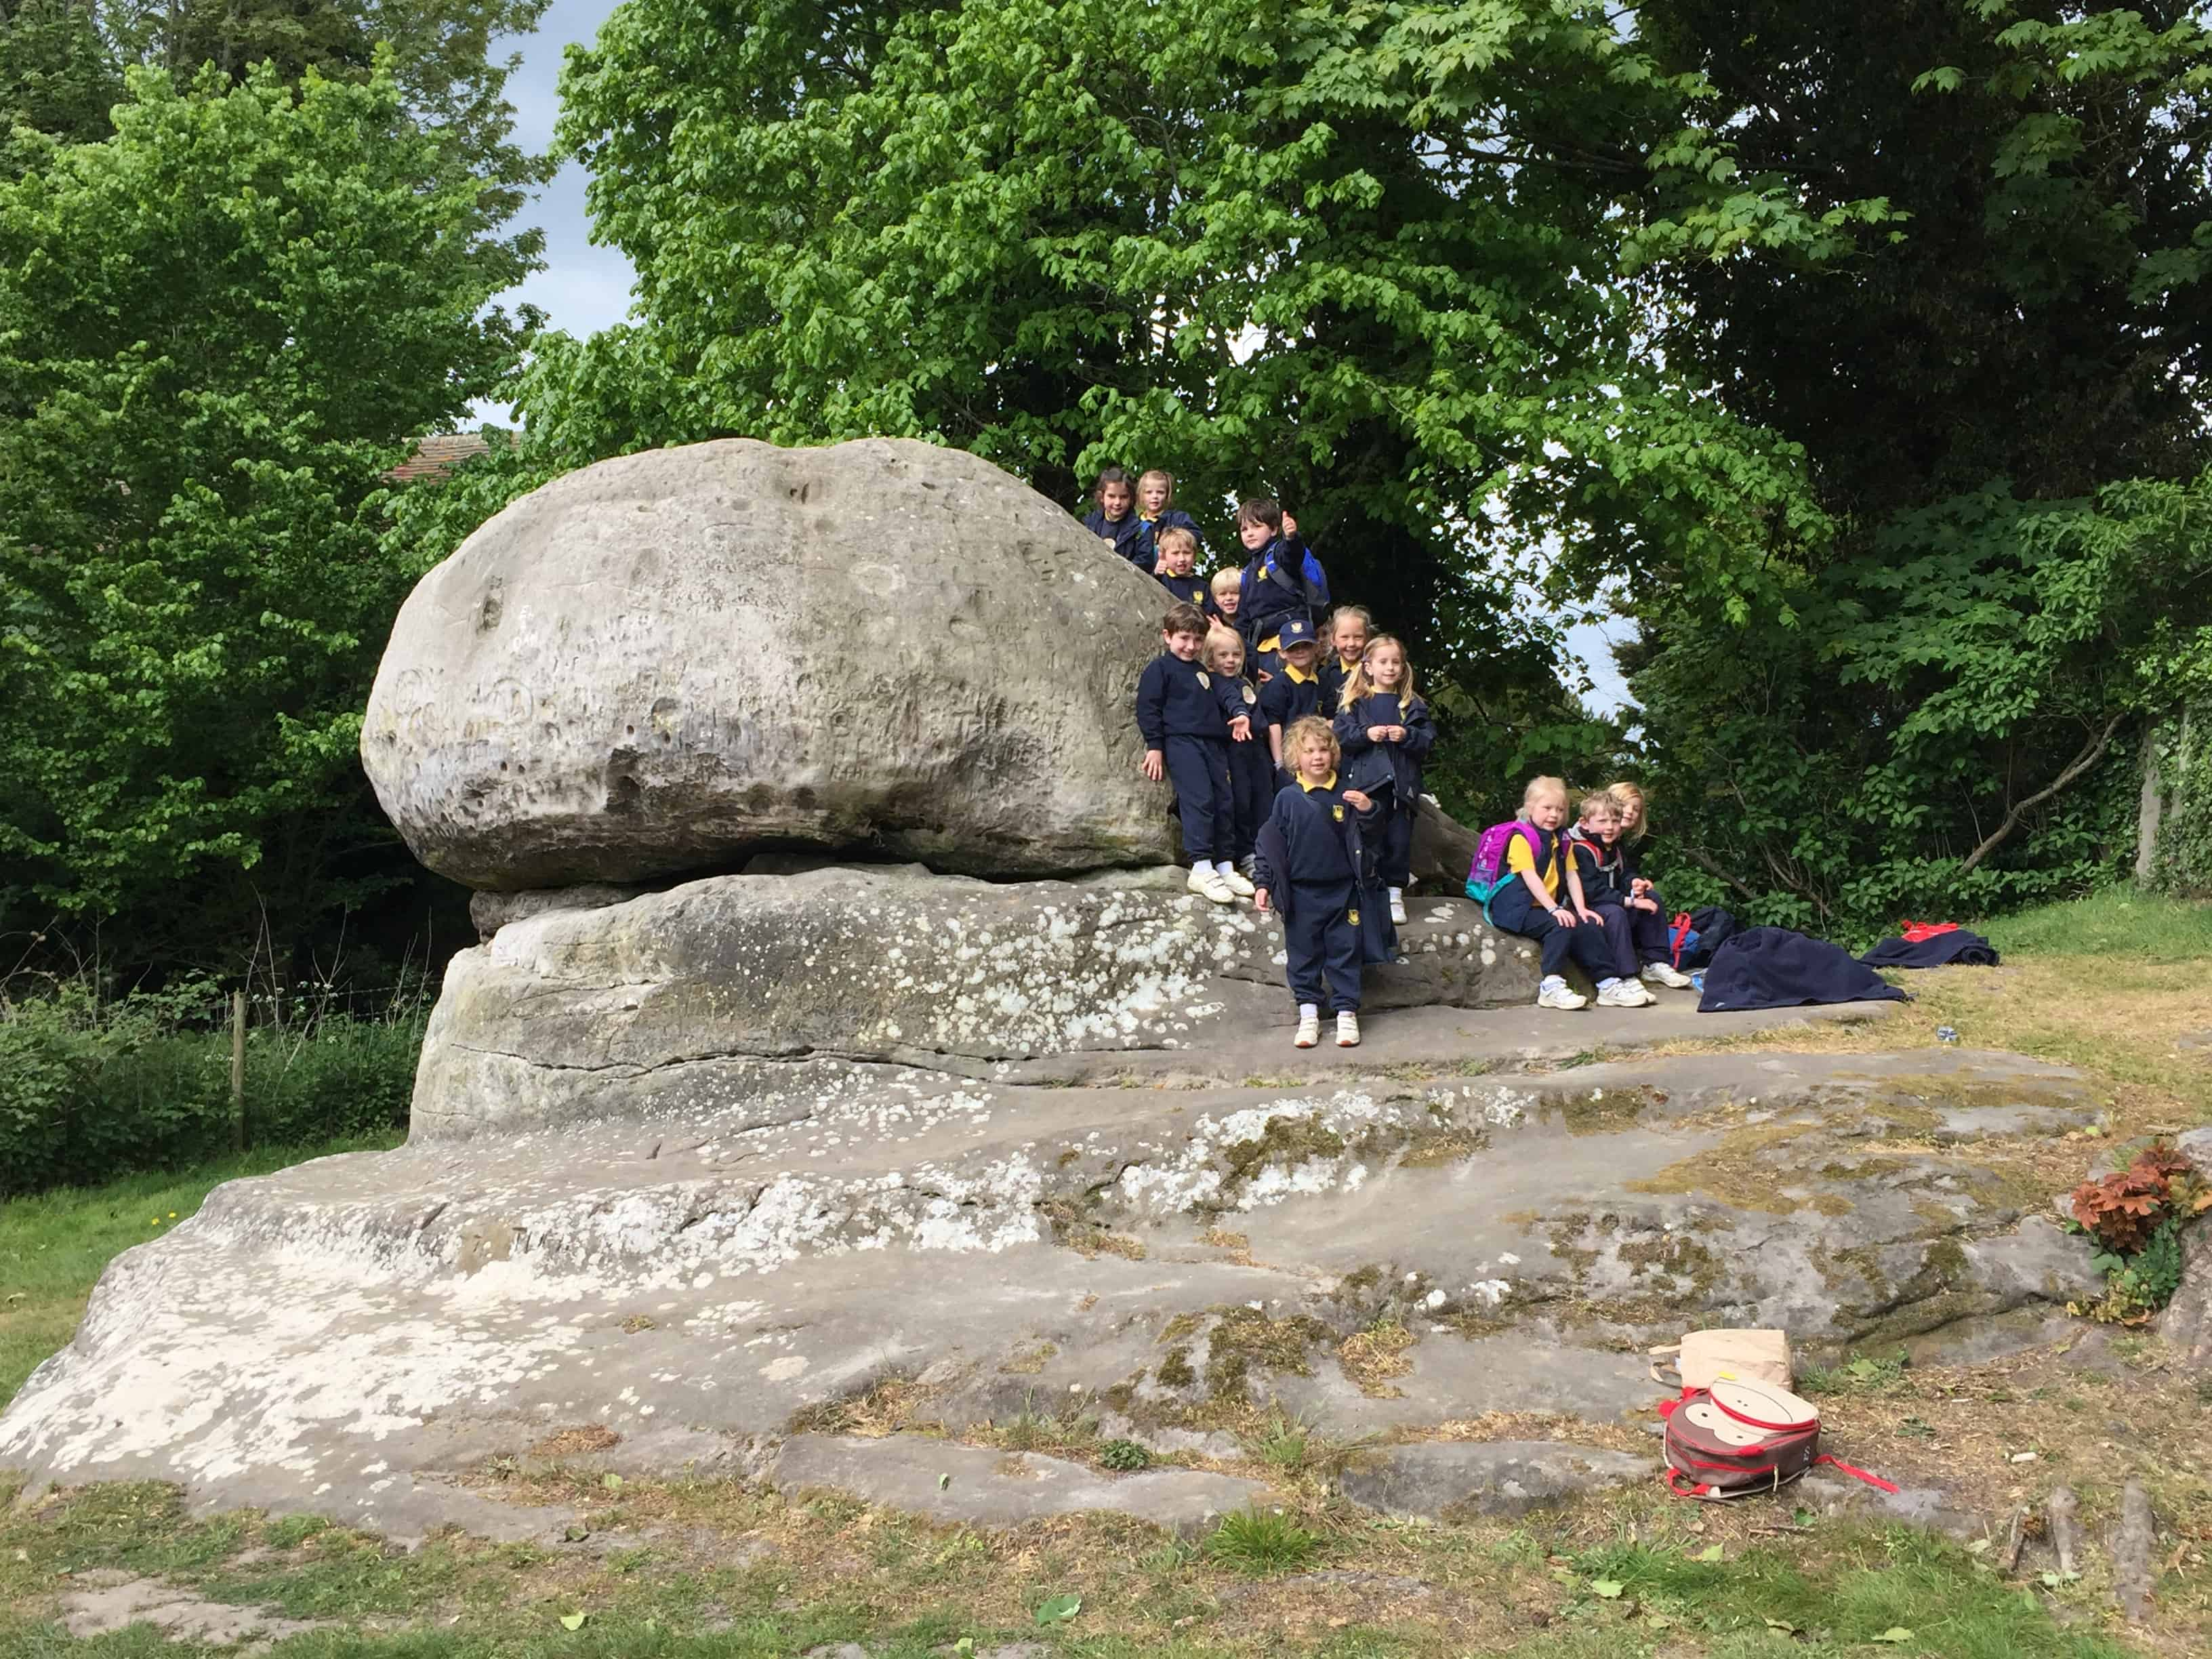 Reception & Year 1 Trip to Chiddingstone